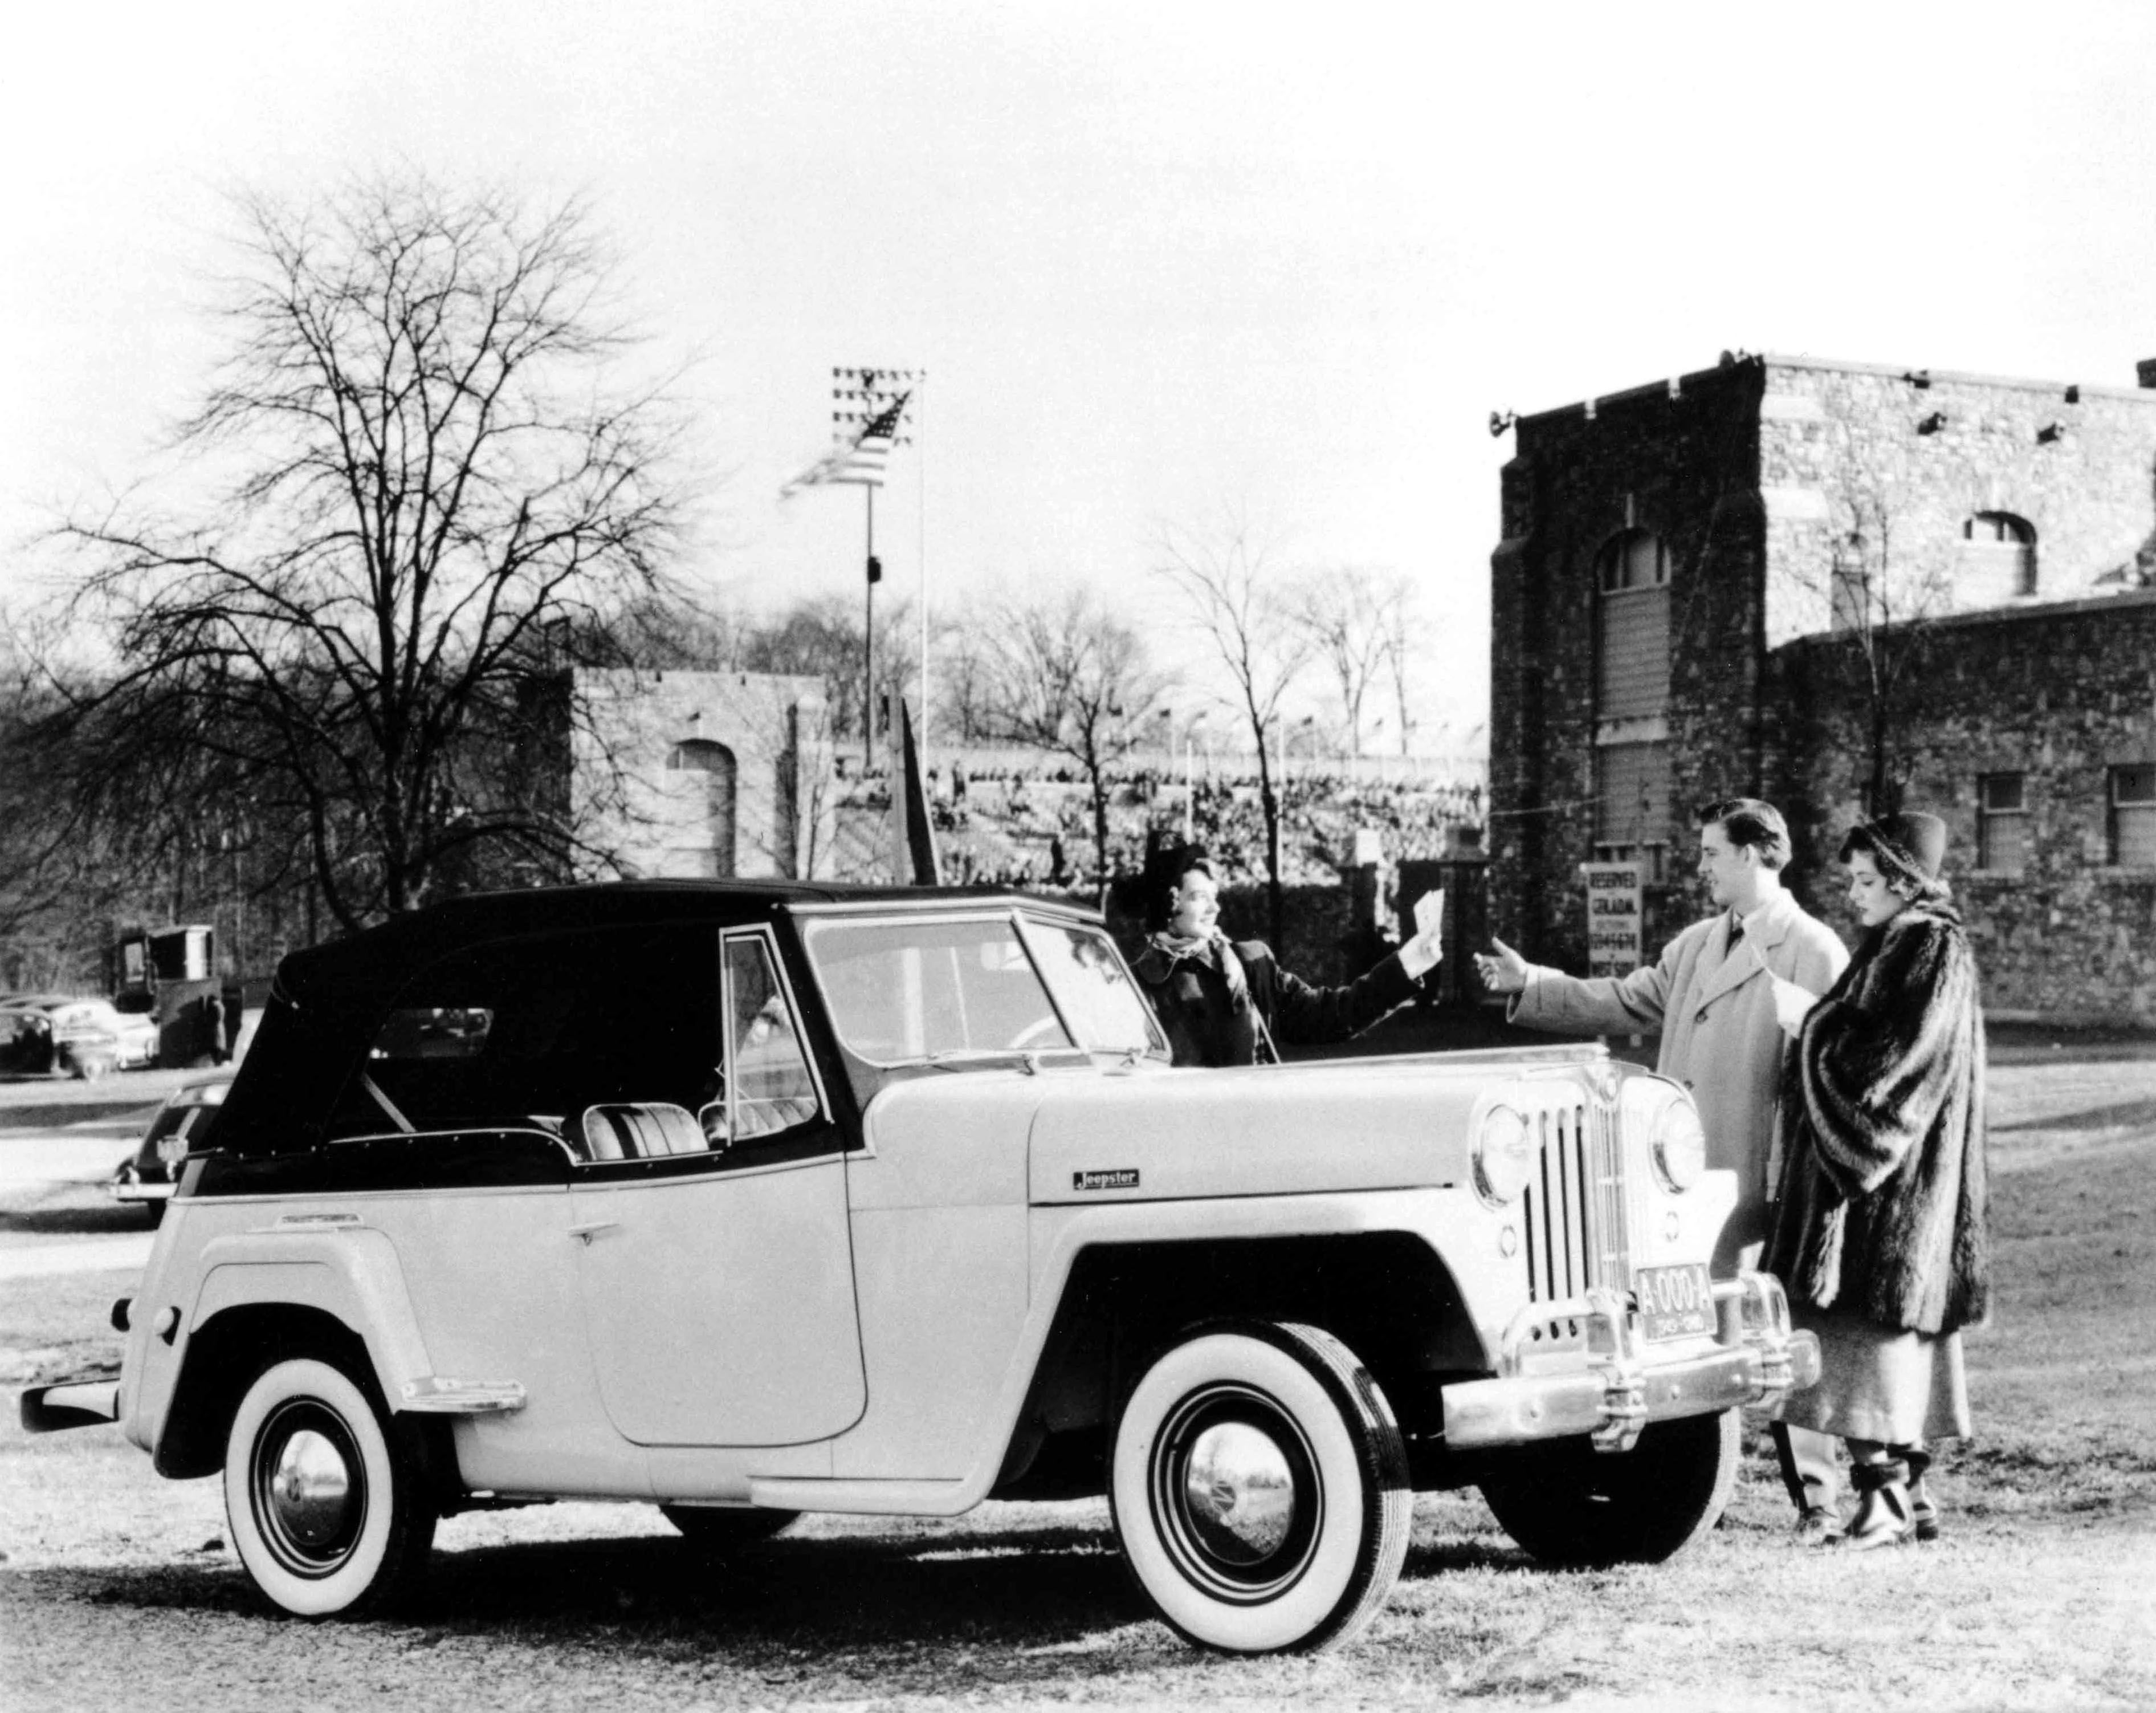 The Jeepster Vj Was The Last Phaeton Style Open Bodied Vehicle Made By Willys Overland Using Side Curtains For Weather Pro Jeepster Jeepster Commando Willys